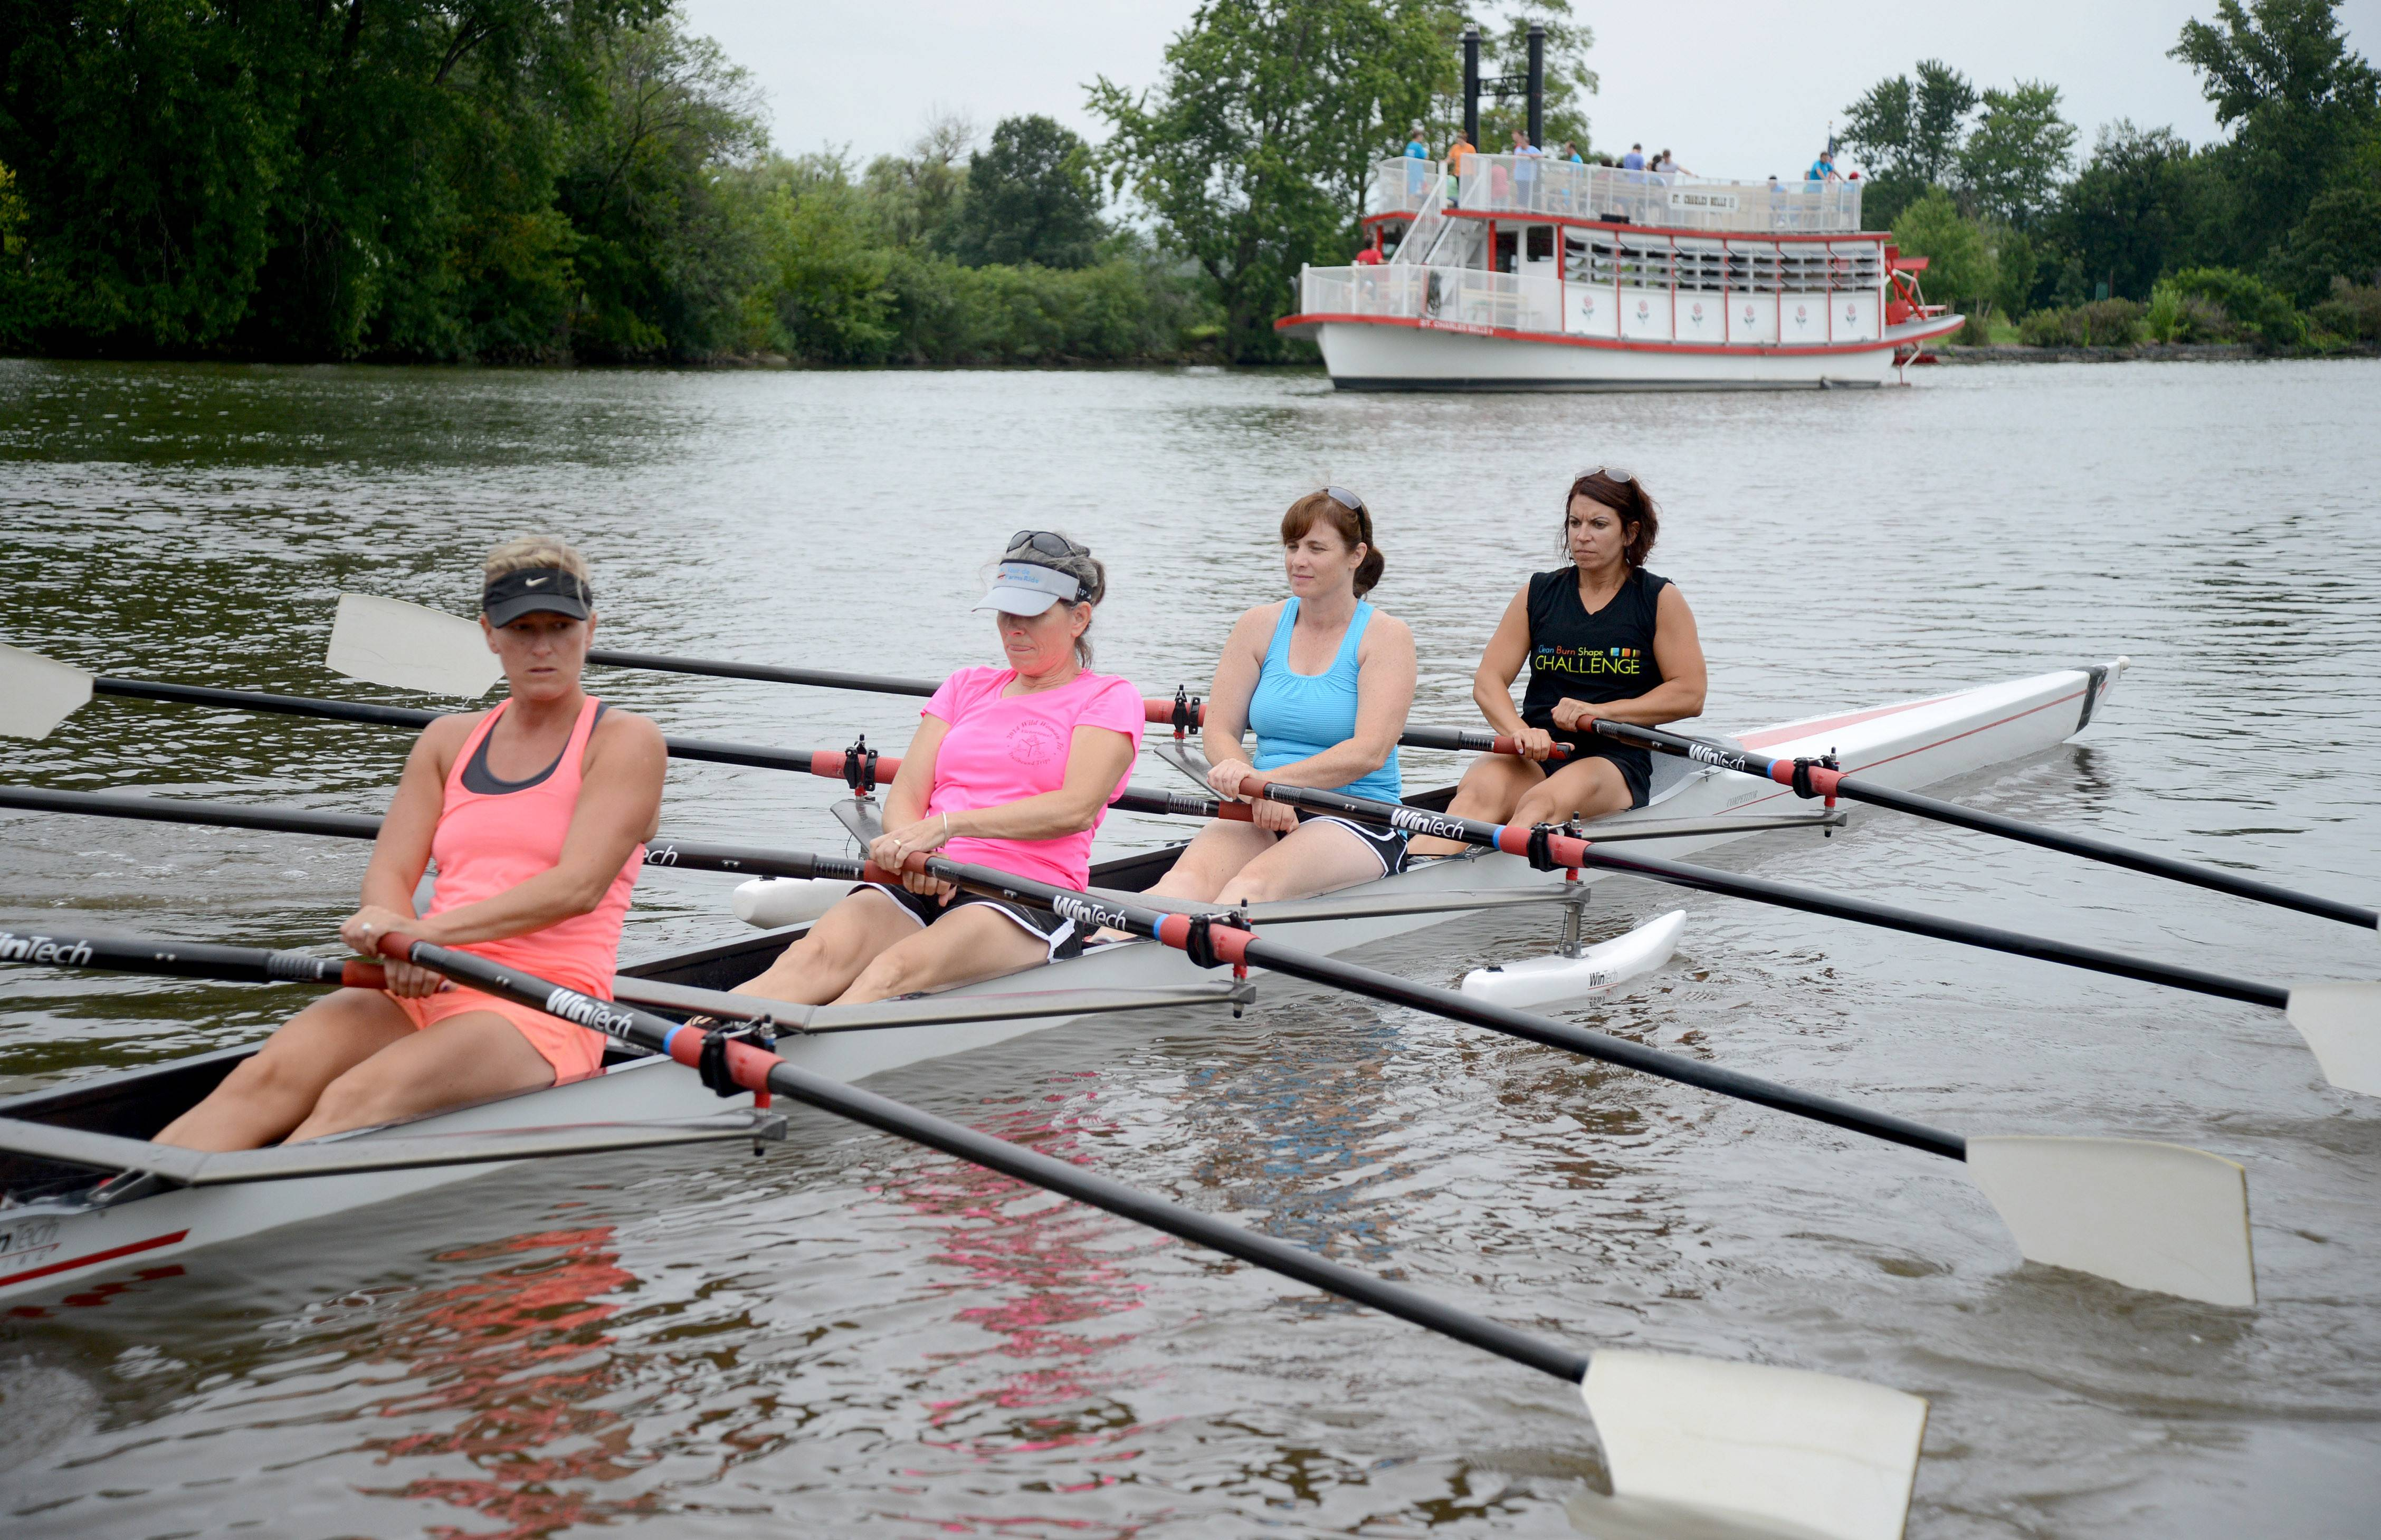 Lue Hagarty, Kendall Tokarski, Ann Fell and Heather O'Brien, all of St. Charles, learn to row Friday during a free trial class offered by Row America at Ferson Creek Park in St. Charles.